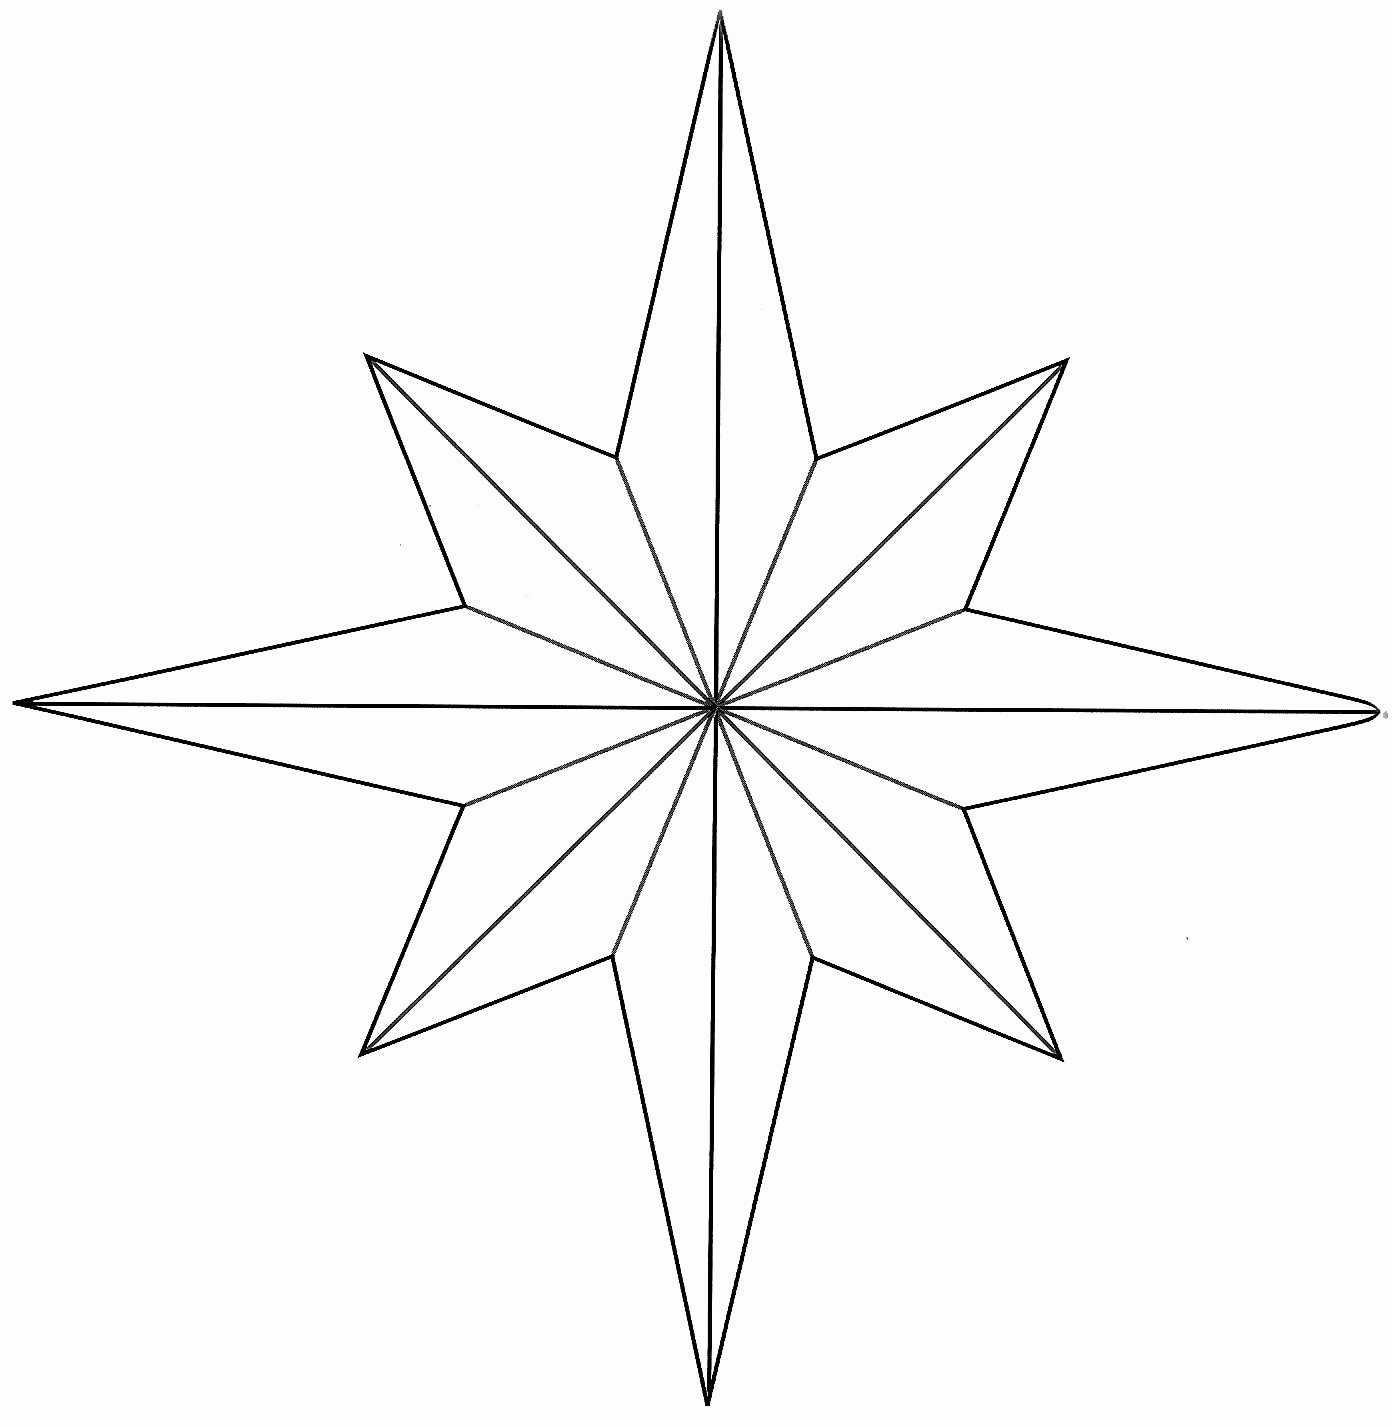 8 Point Star Template Printable Luxury I Wanted to Share This 8 Point Star Template that I Came